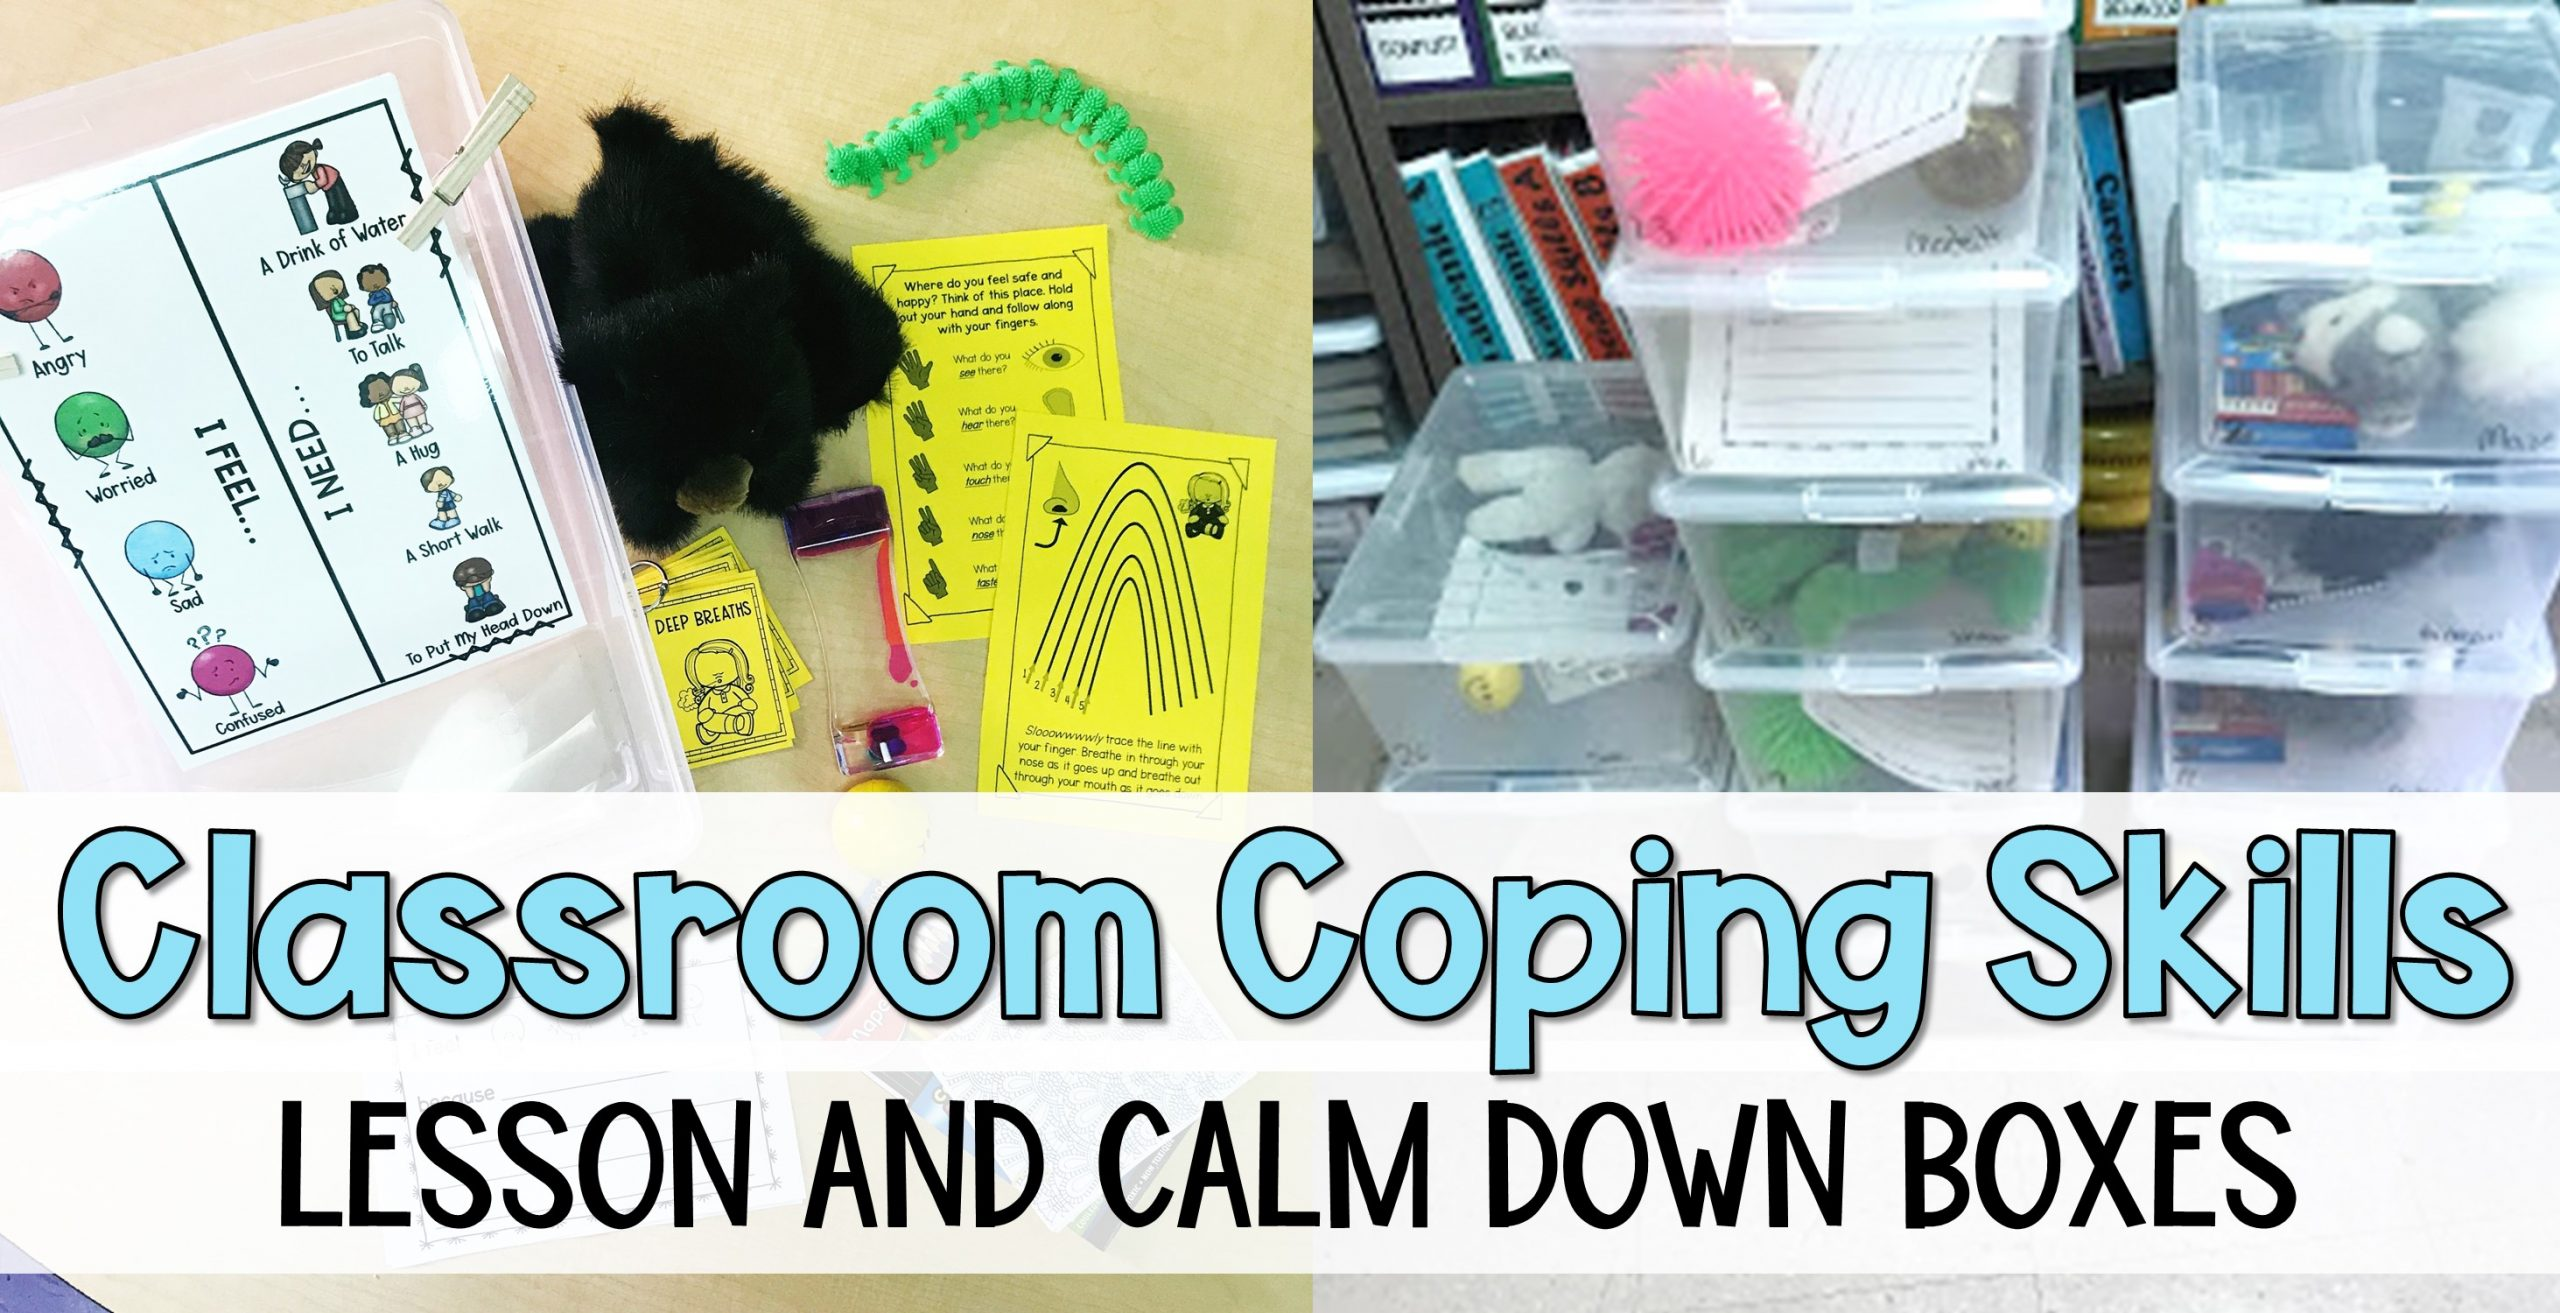 Classroom Coping Skills Lesson